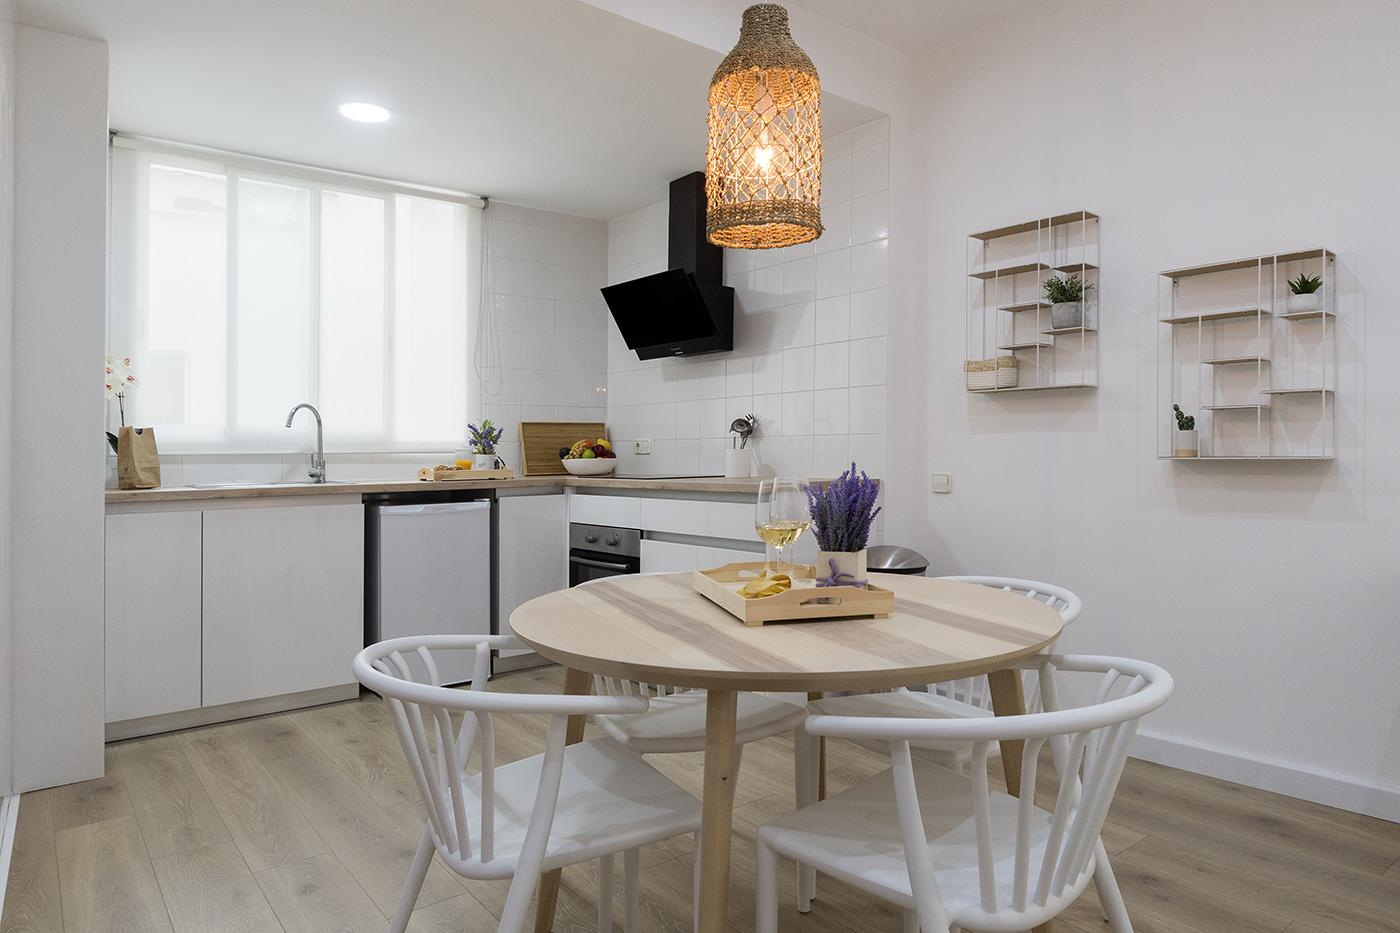 Santa Irene - Modern apartment for expats in Valencia